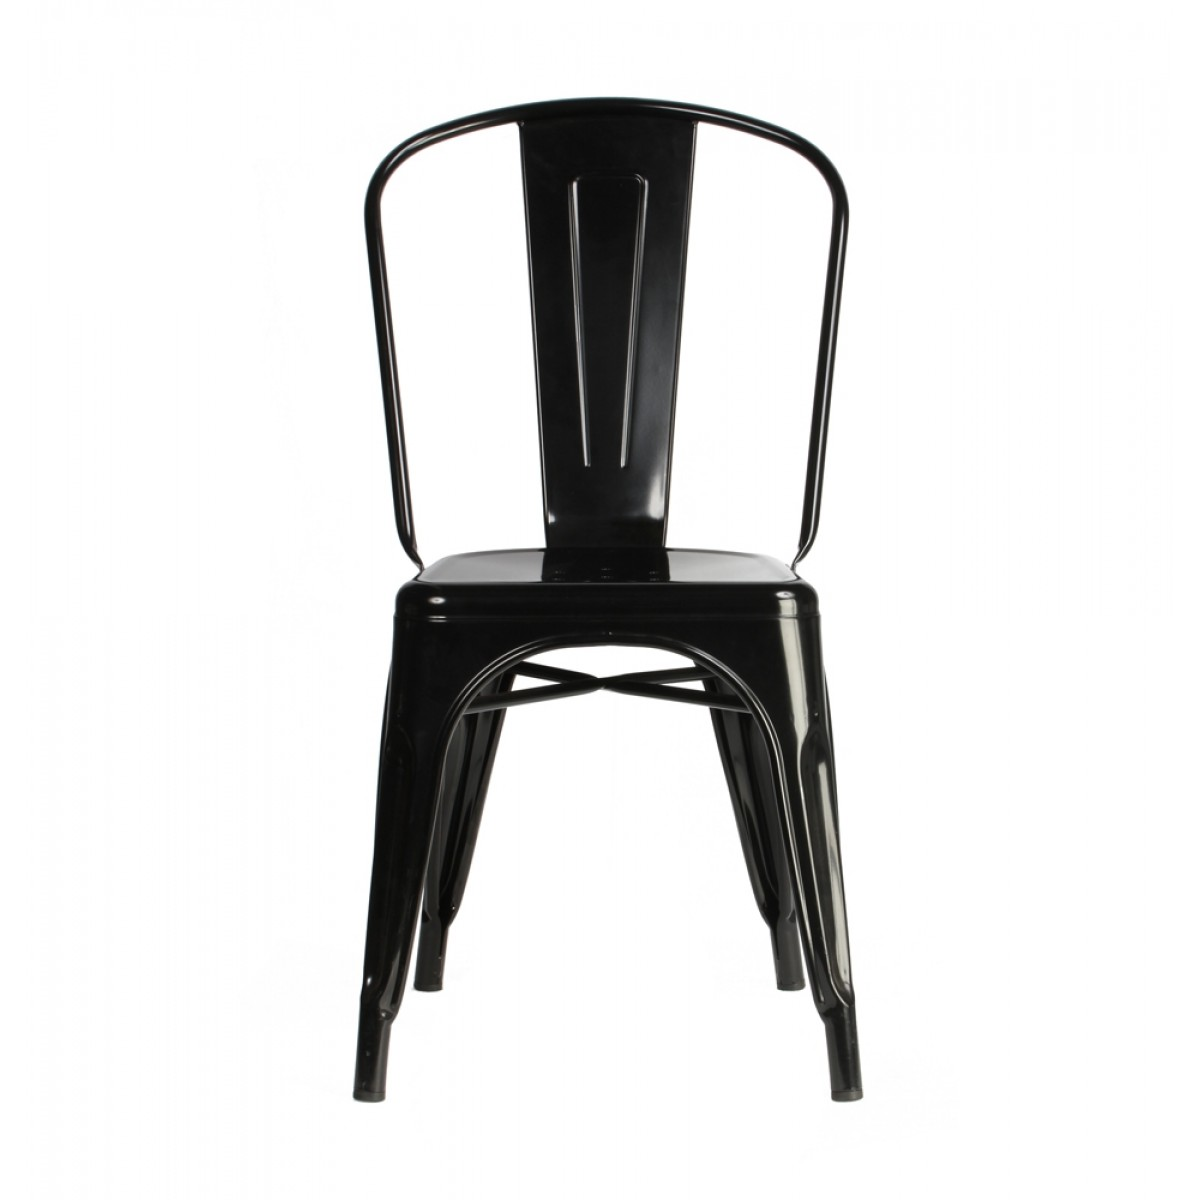 tolix style chair mid century modern arm metal industrial loft designer black cafe